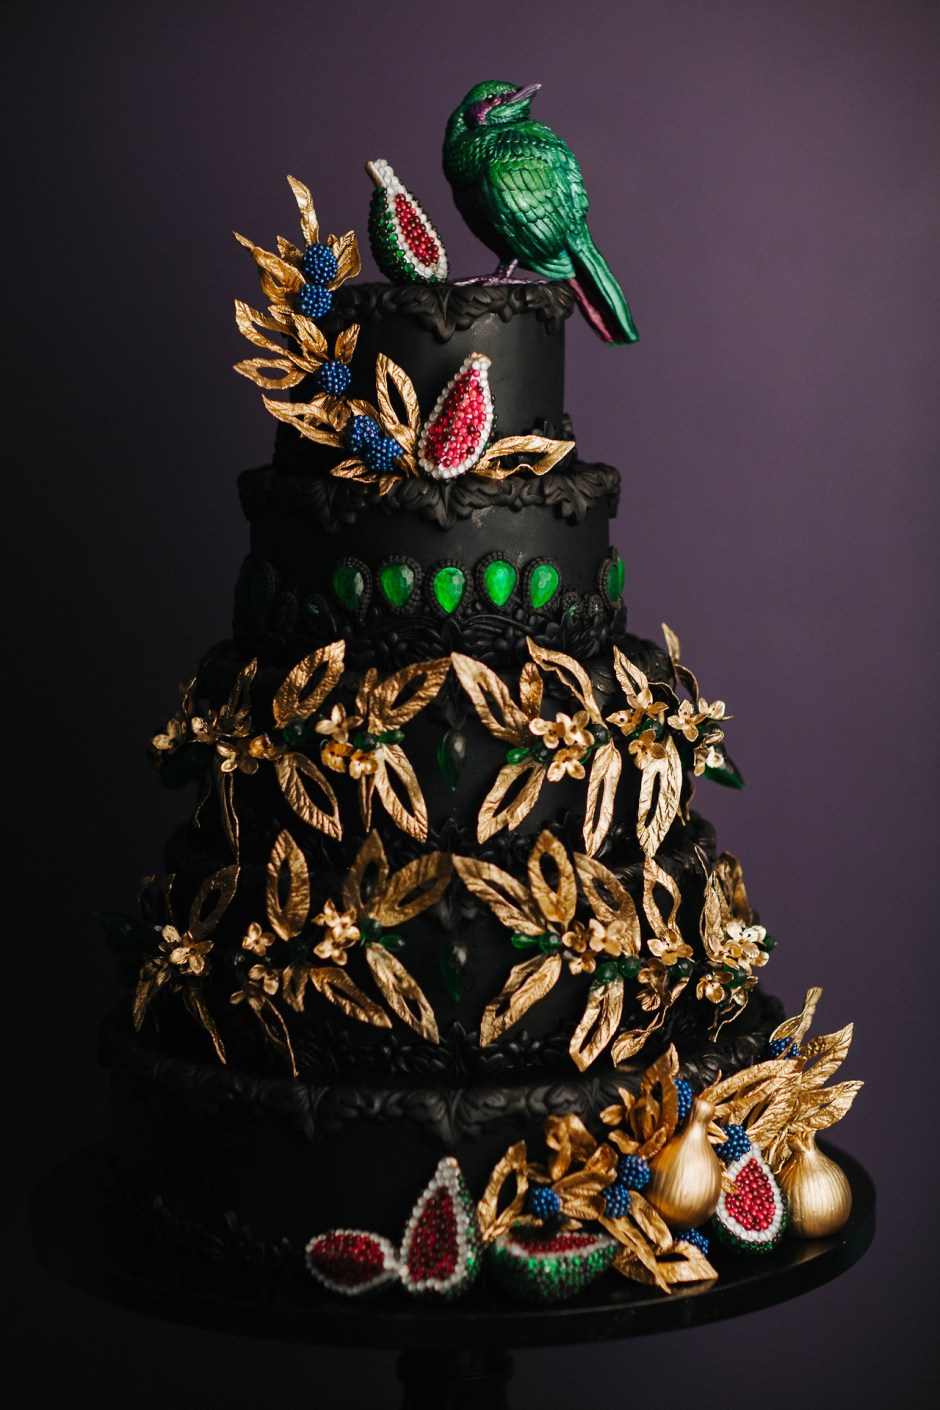 Emerald Wedding Cake I Couture Wedding Cake I Fashion Wedding Cake I Luxury Wedding Cake I Sugar Flower Wedding Cake I Avant Garde Wedding Cake I  Mischief Maker Cakes #mischiefmakercakes #luxury